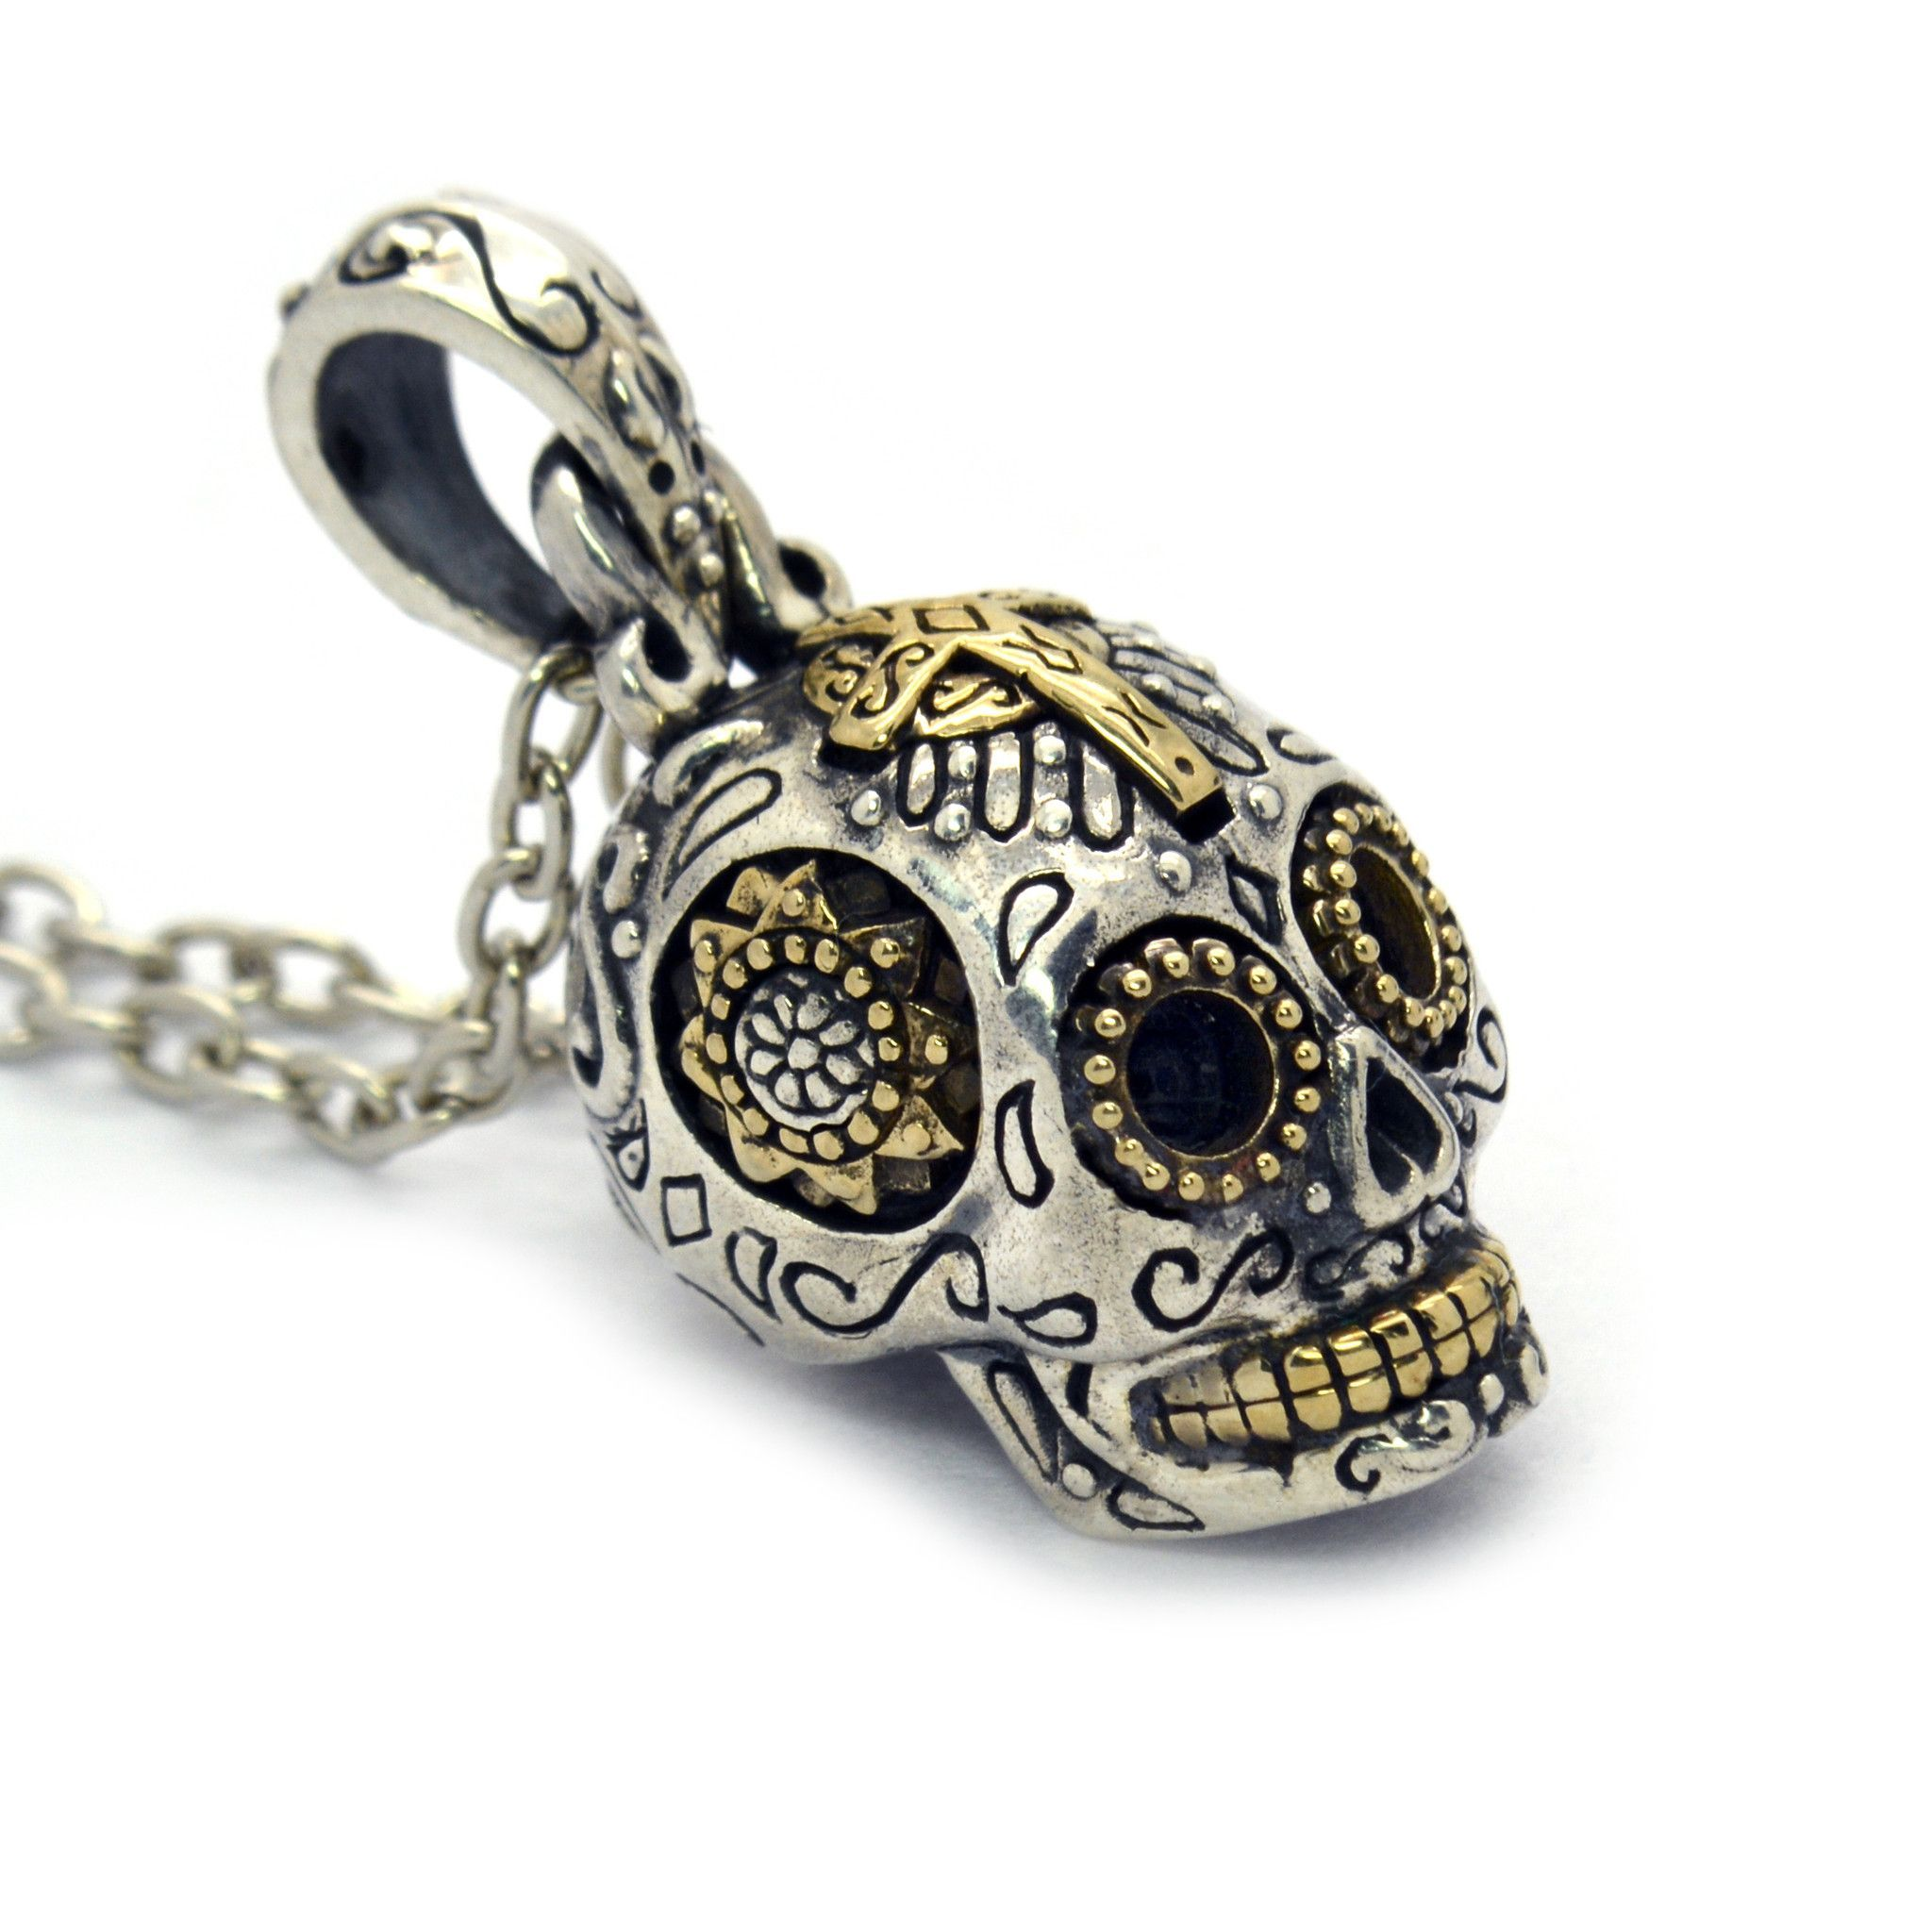 sugar rosales jewelry native skull david american products pendant